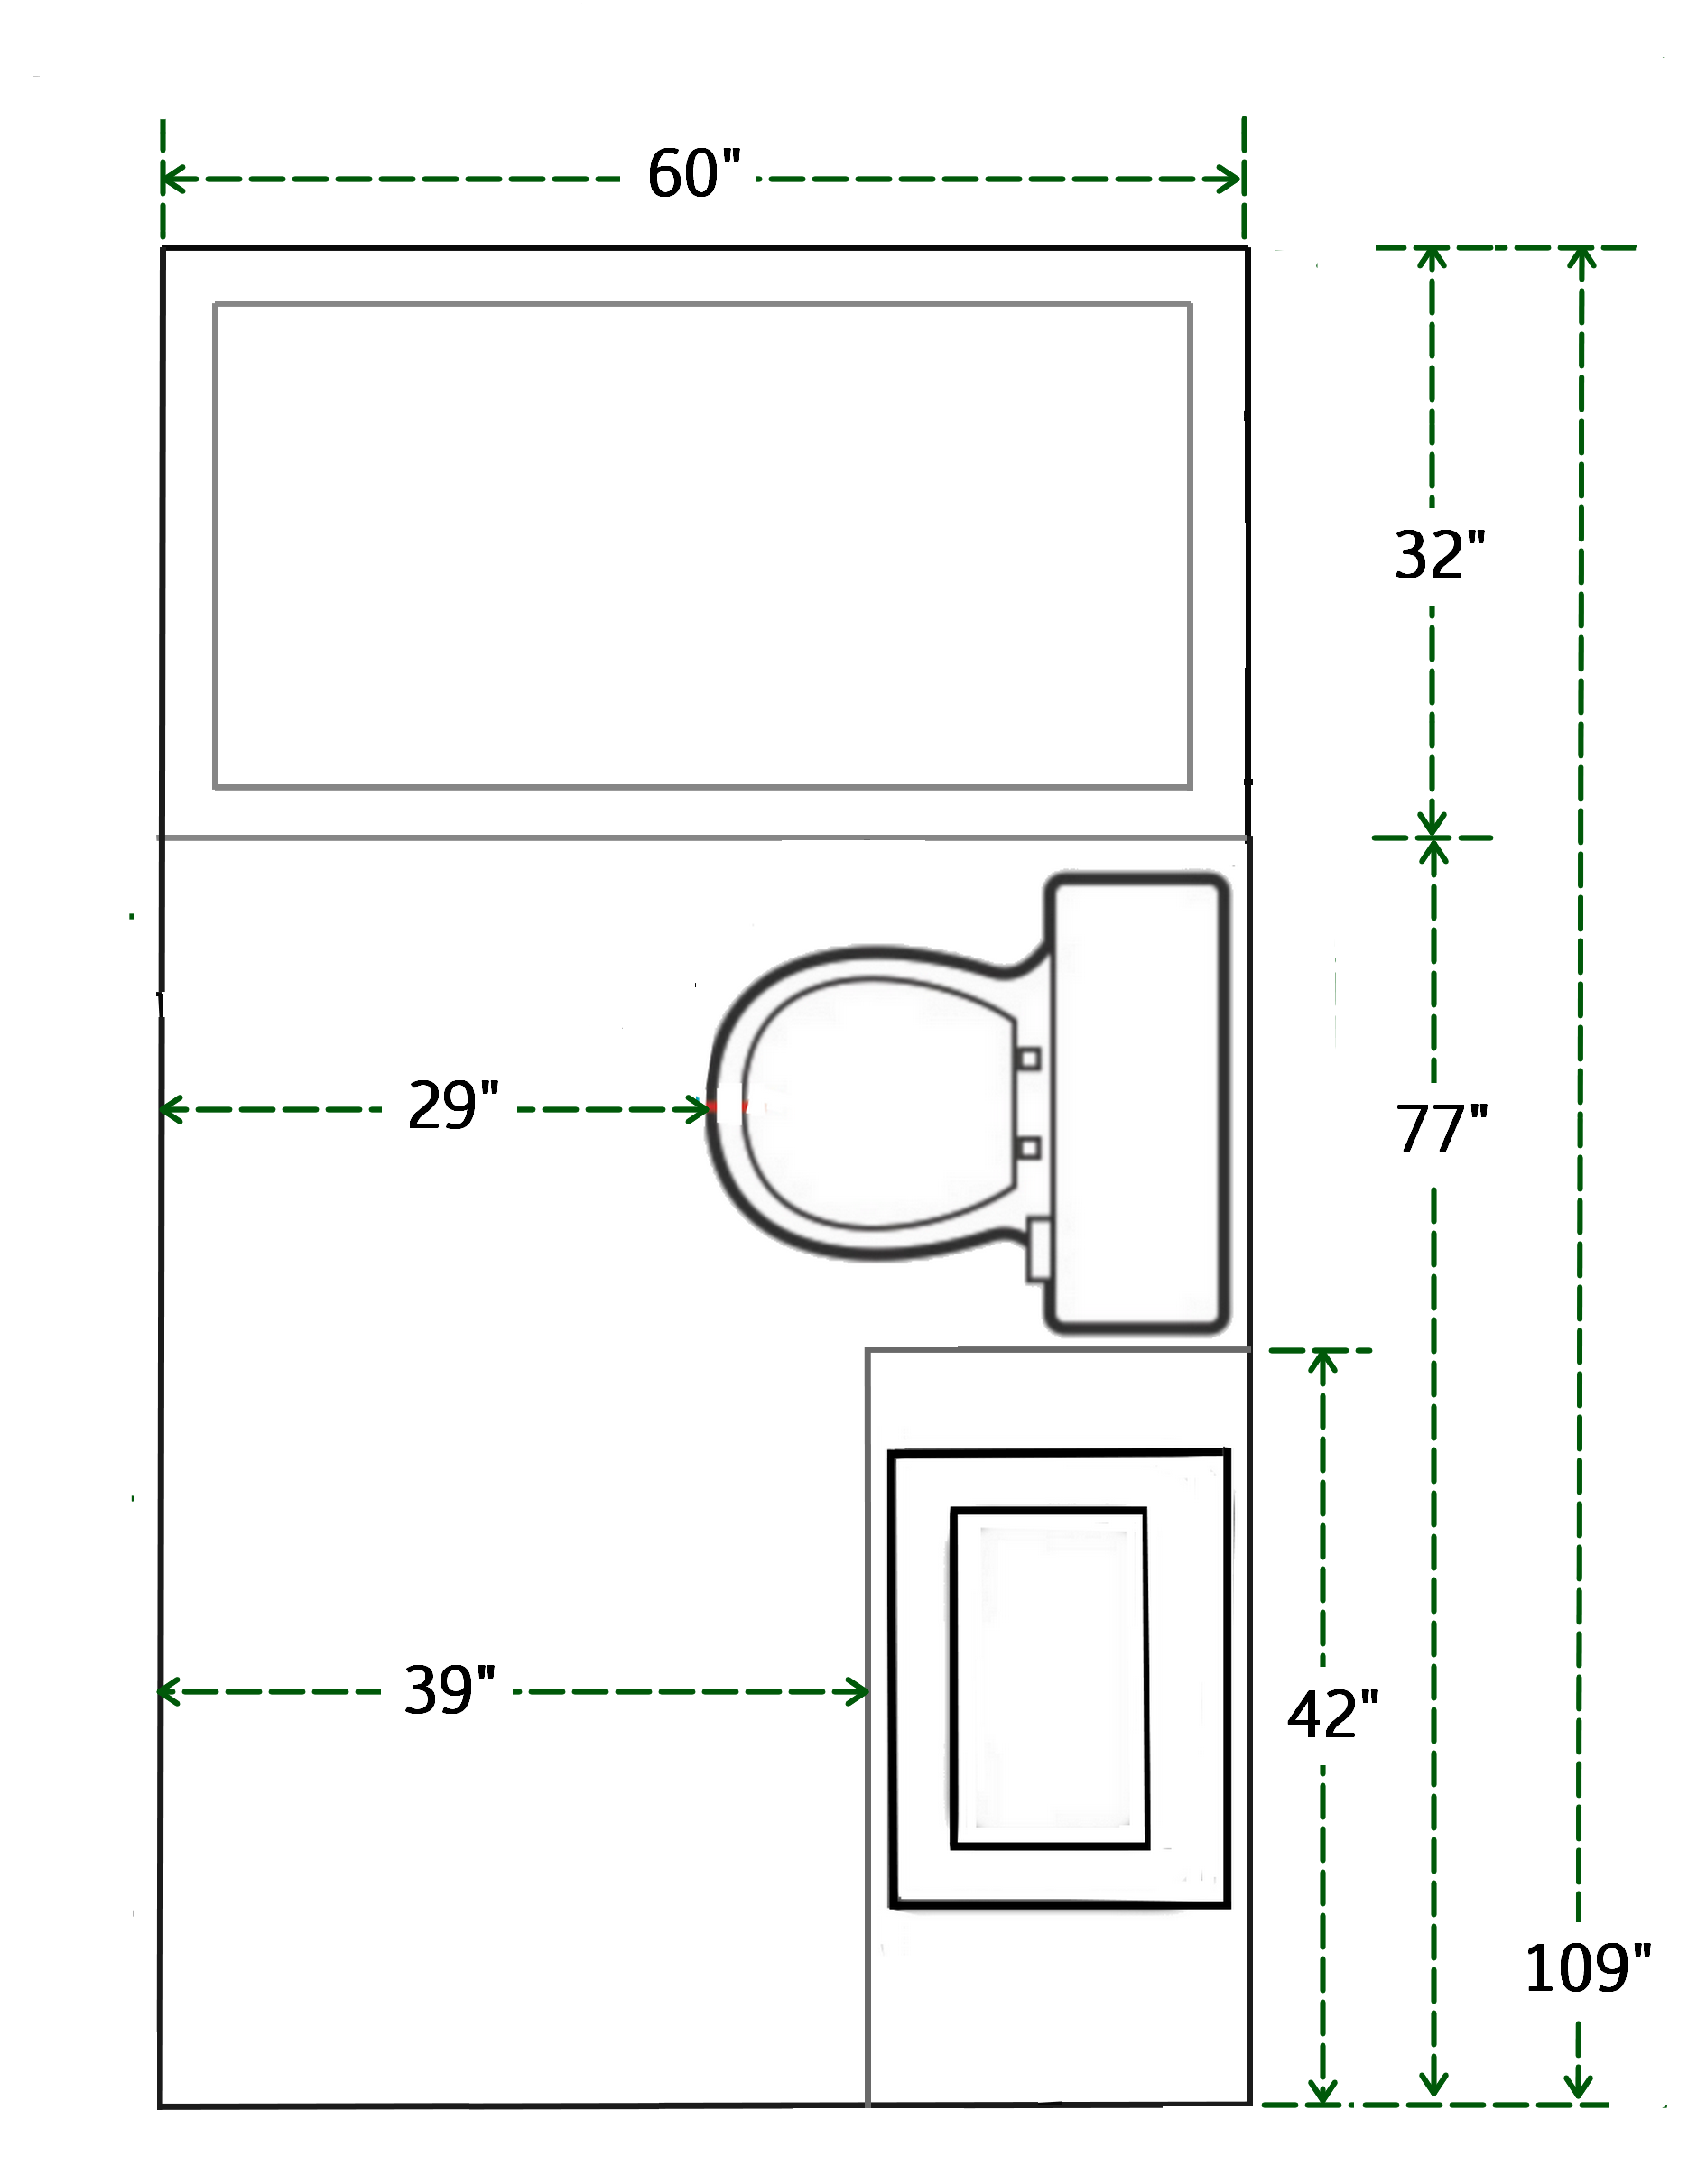 Floor Plan And Measurements Of Small Bathroom Small Bathroom Floor Plans Small Bathroom Layout Bathroom Floor Plans